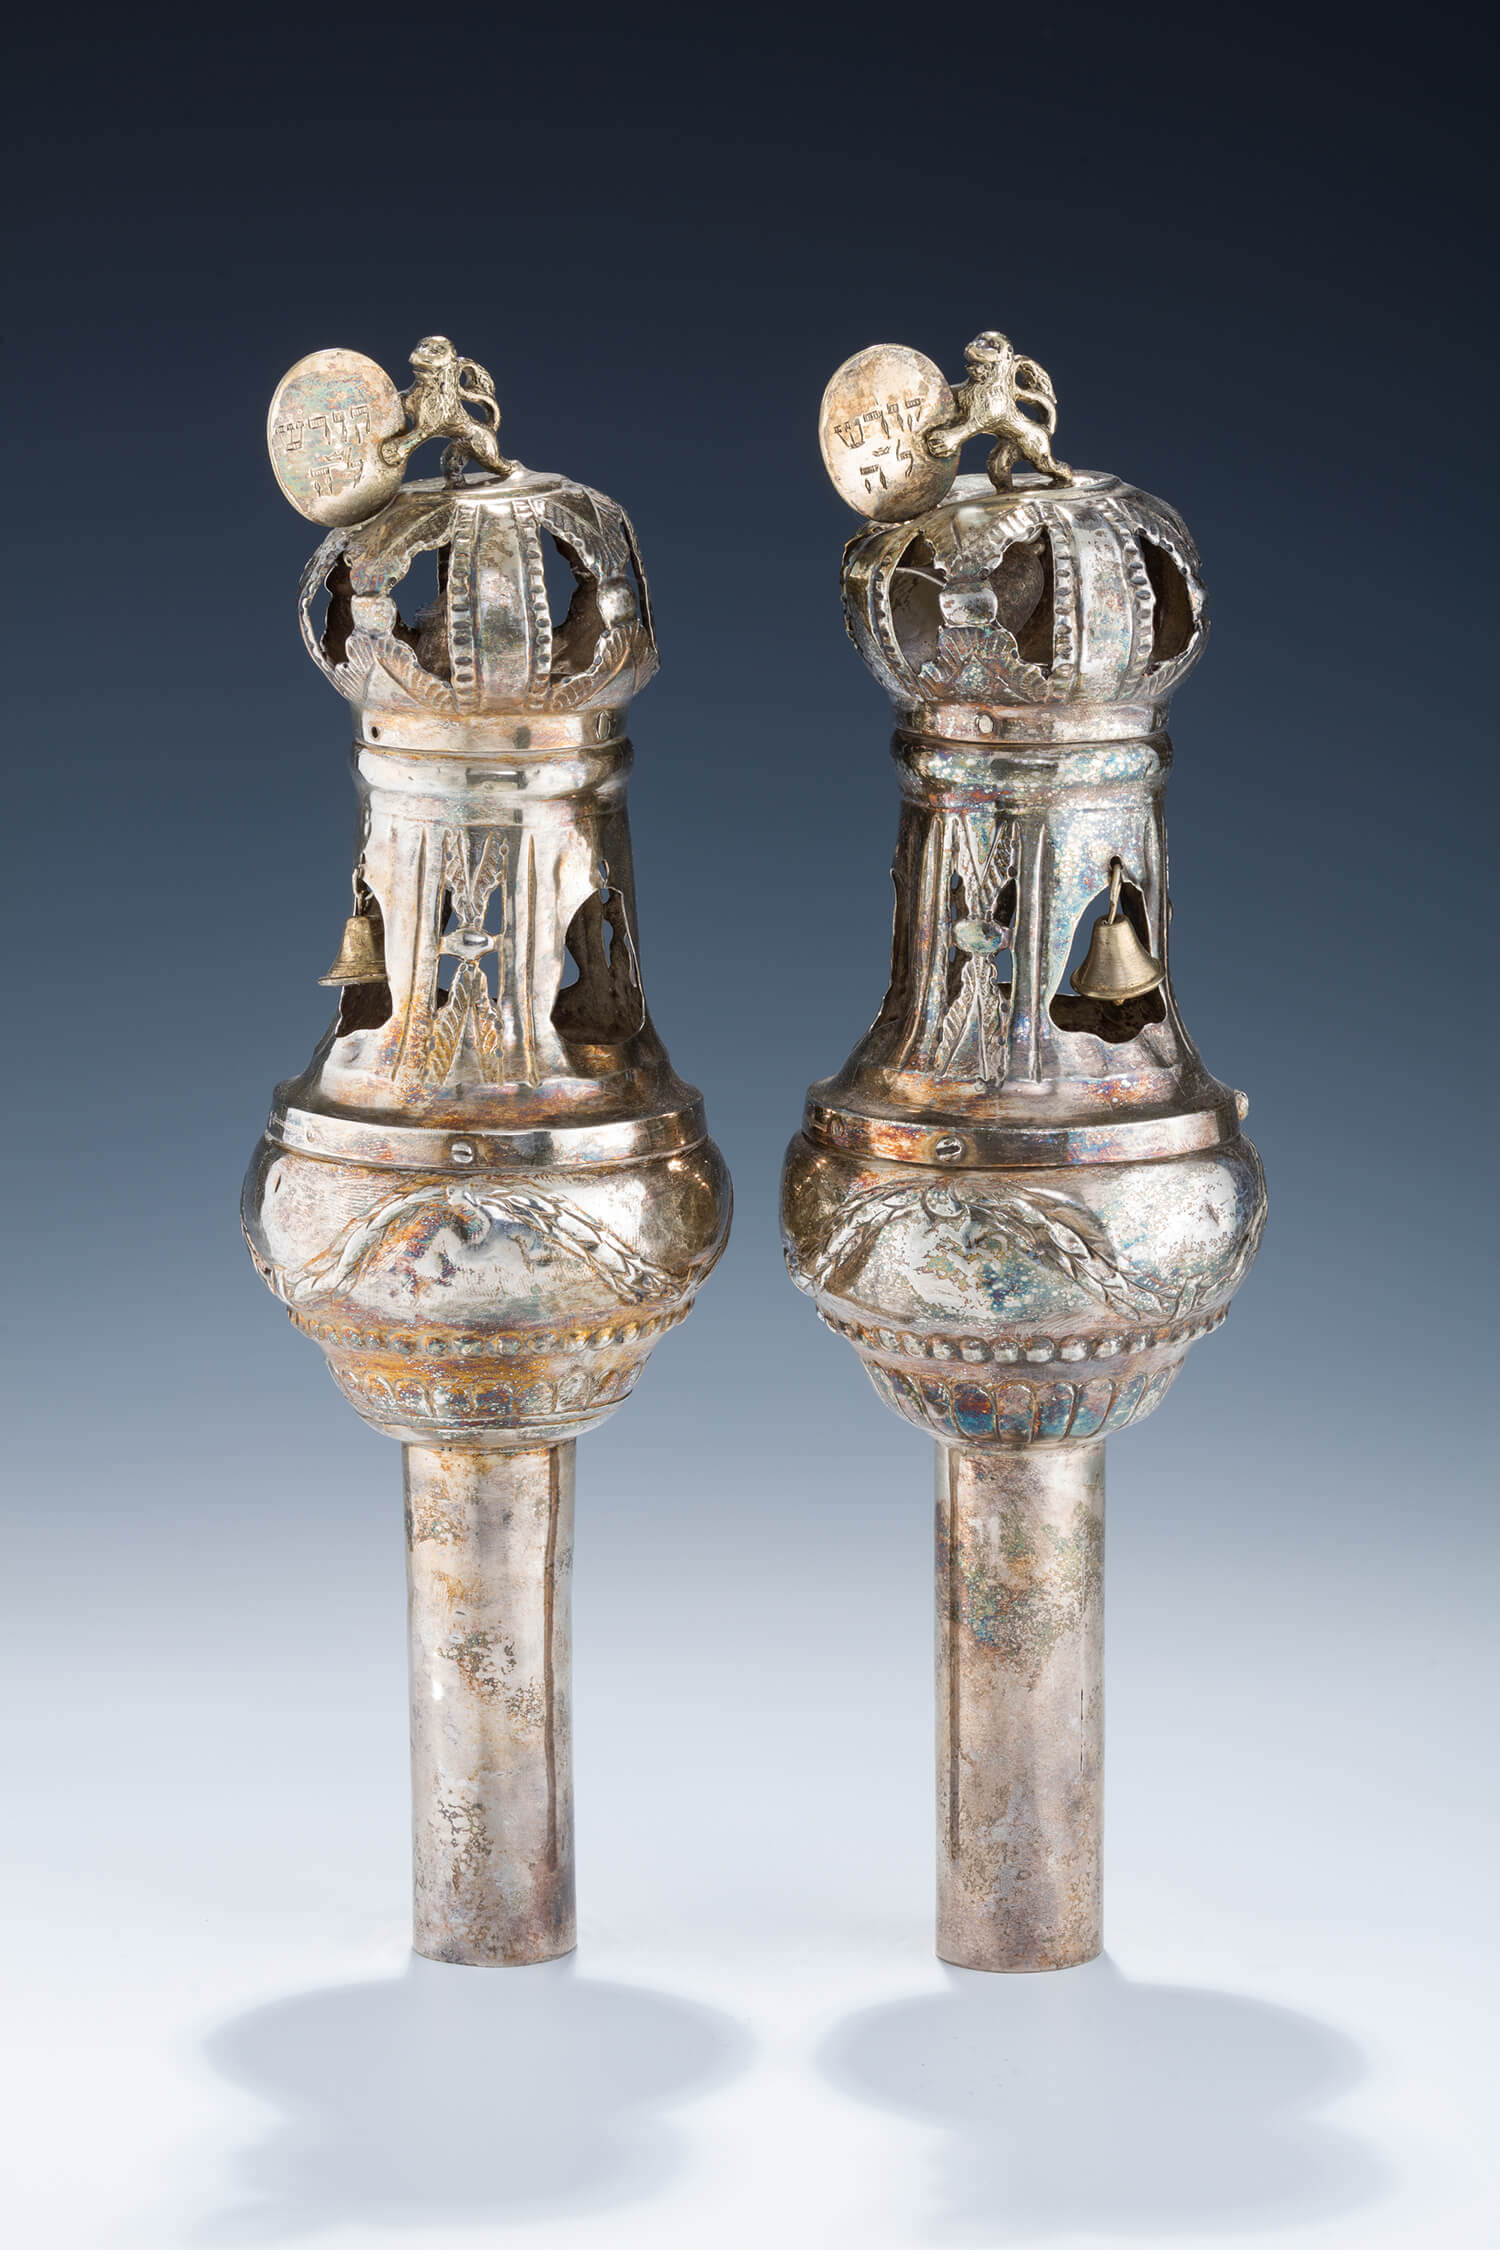 052. A PAIR OF SILVER TORAH FINIALS BY JOHANN FREIDRICH EHE (1735 – 1808)